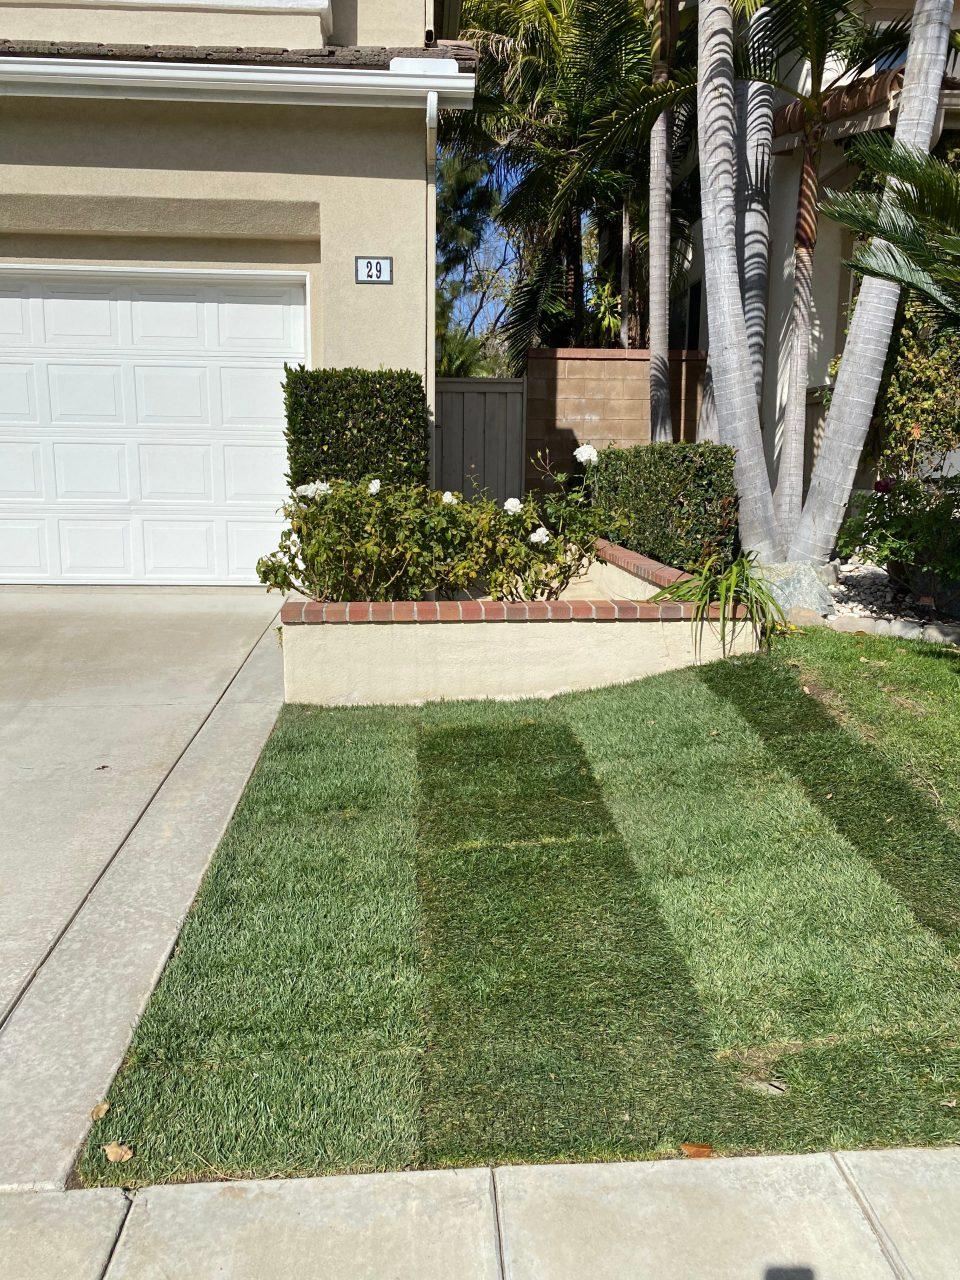 You can see here how we staggered the squares of sod